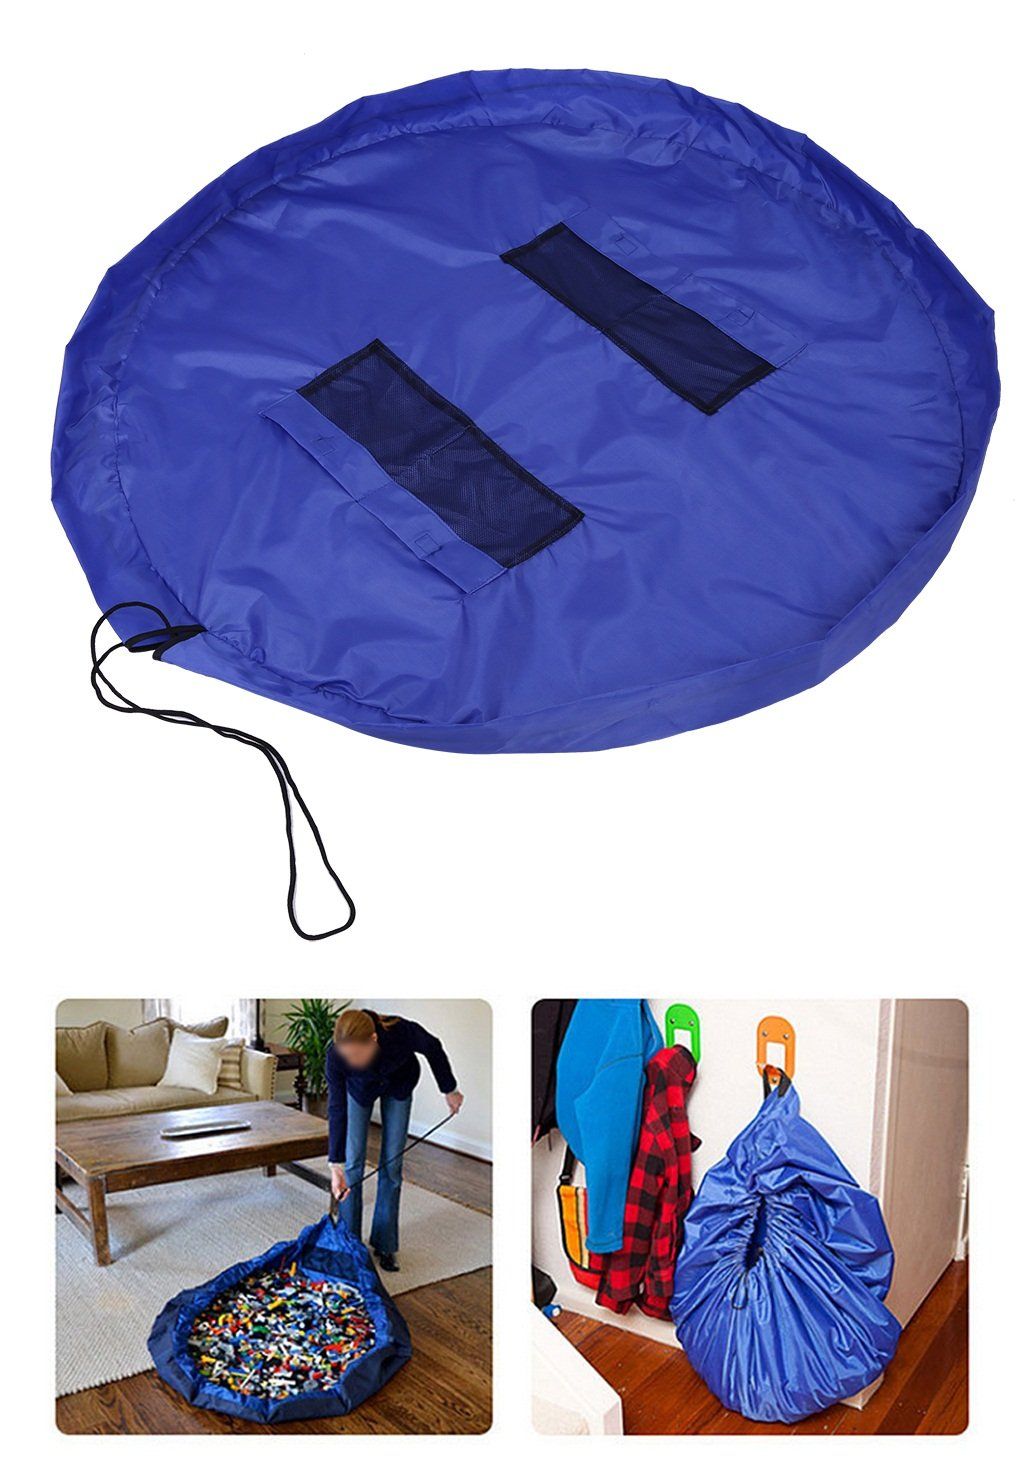 zjchao Easy Tidy Play & Storage mat - Quickly swoops into a shoulder bag - Ideal for Lego, Duplo & other children's toys for faster cleanup! Atlantic Blue (Large- 150CM) Duplo & other children's toys for faster cleanup! Atlantic Blue (Large- 150CM)